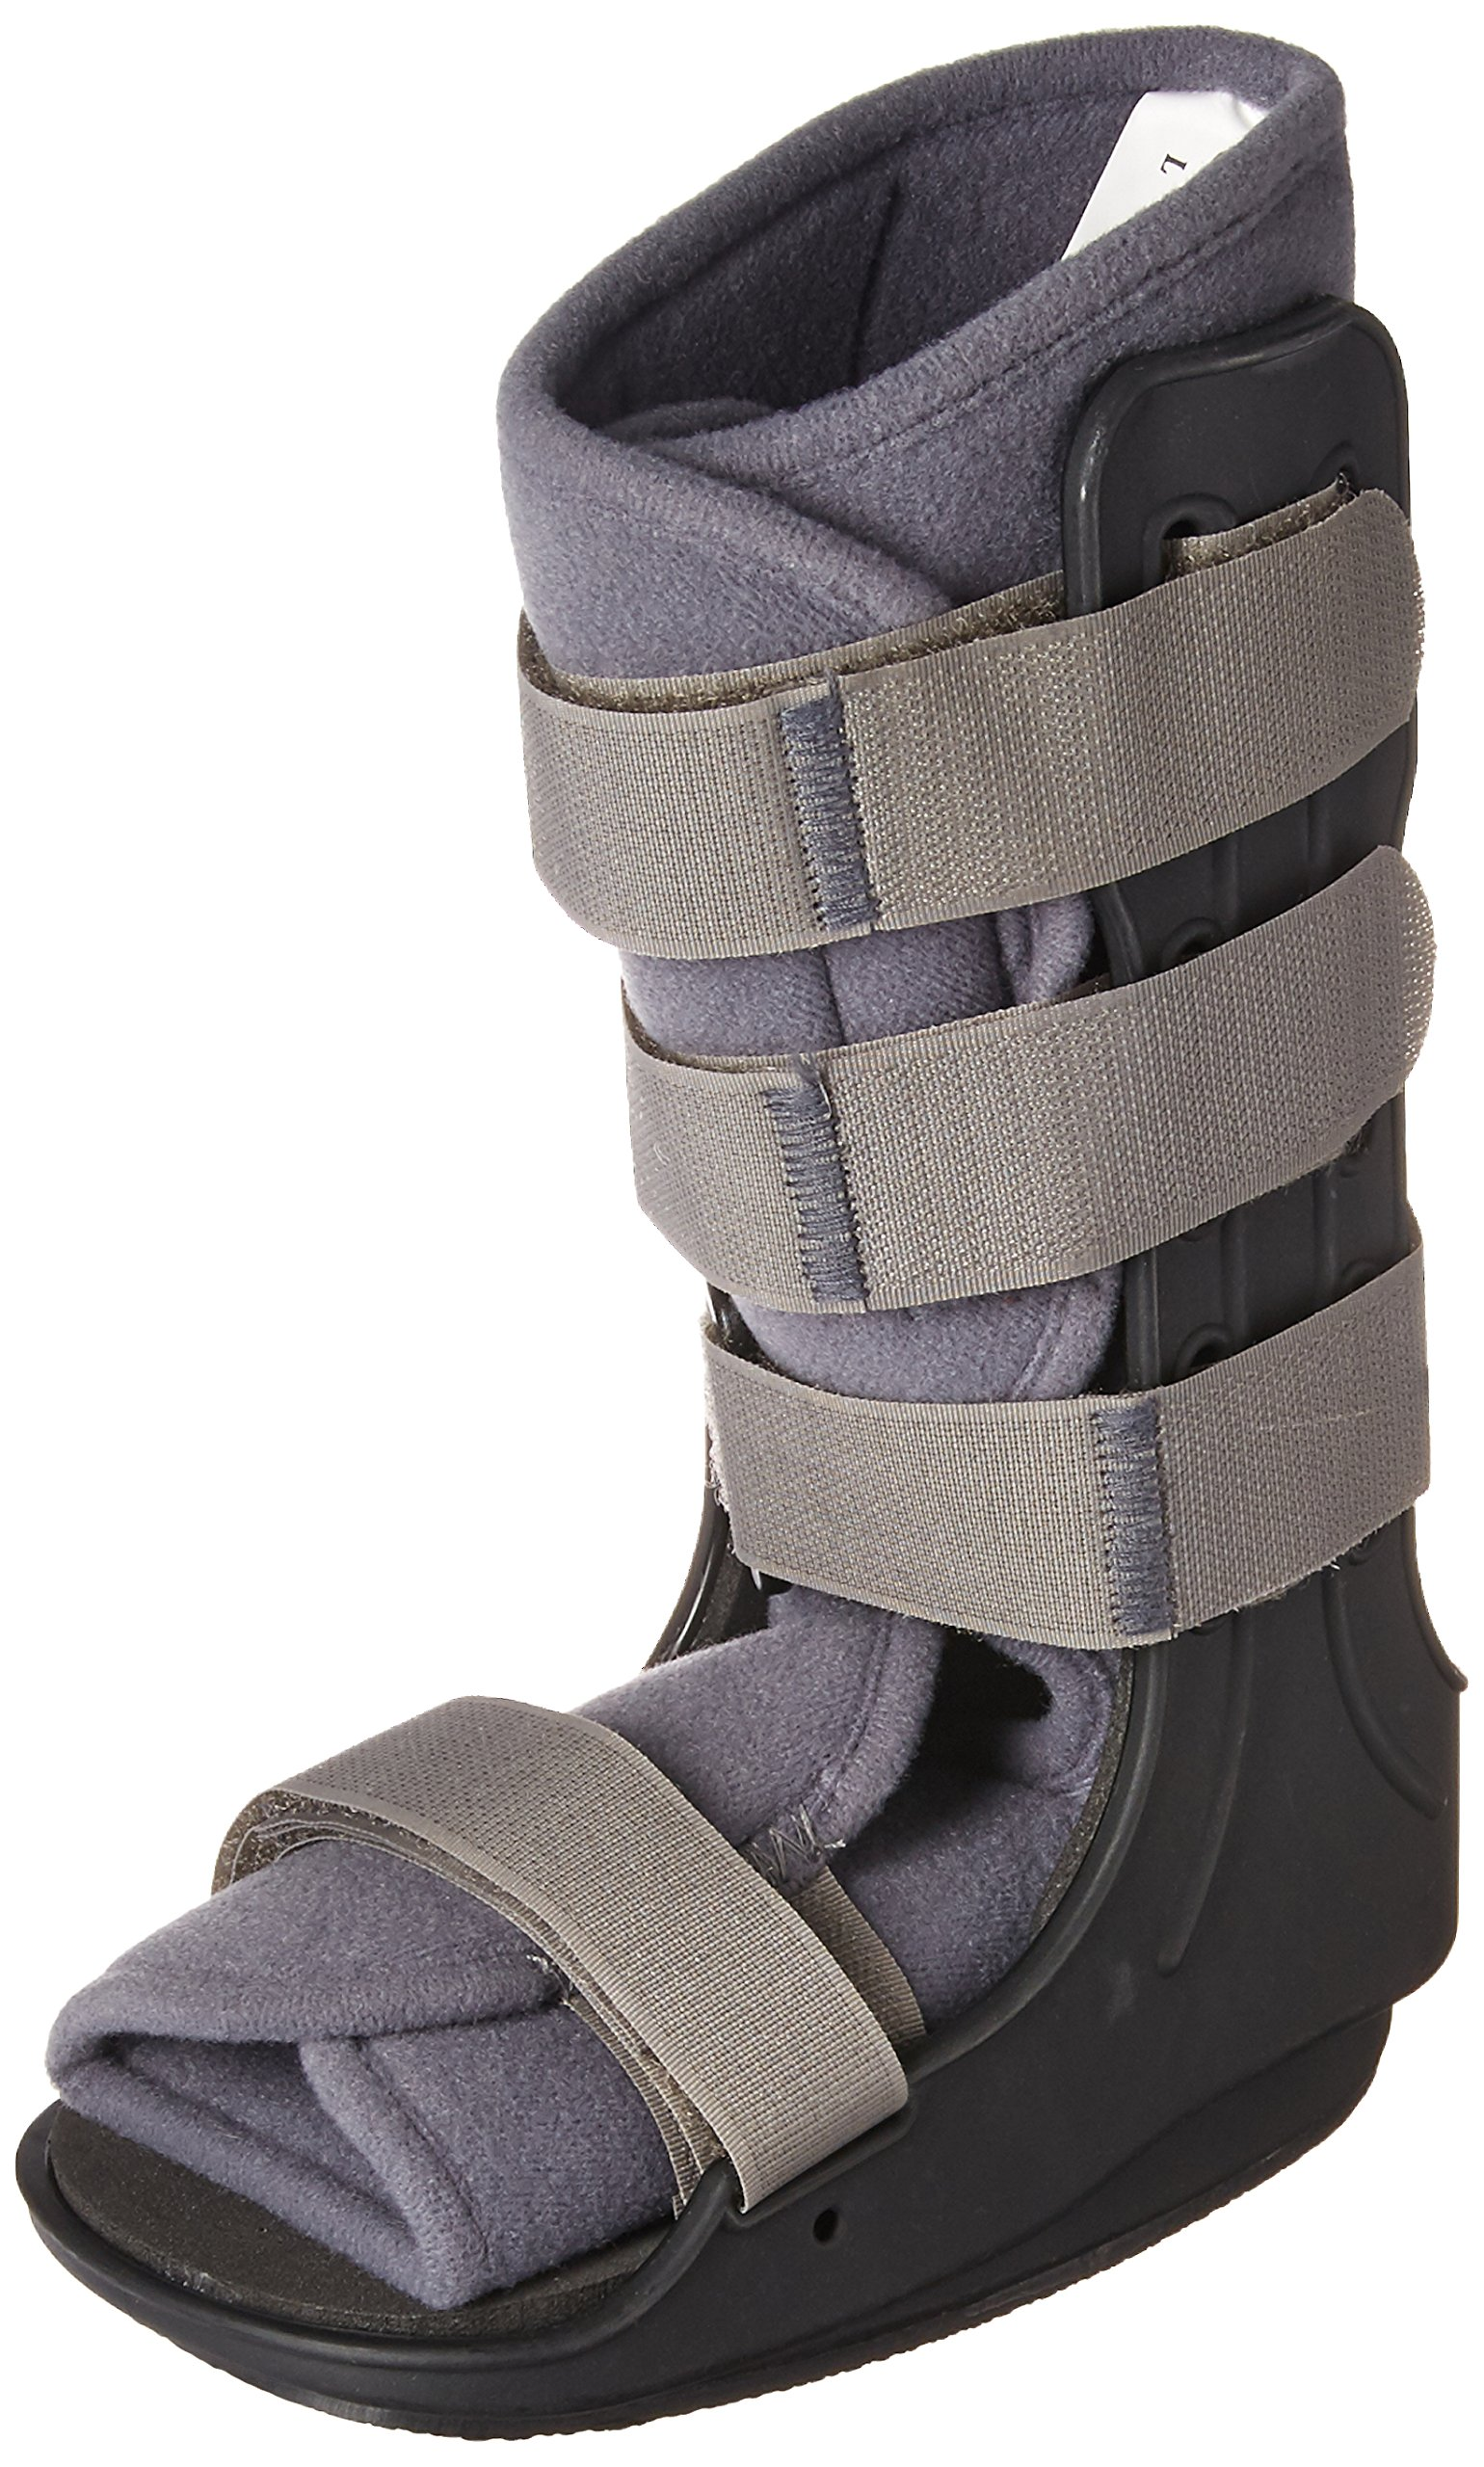 Sammons Preston Large Pediatric Walker, Comfort Fit Brace and Support for Children and Kids, Lightweight Padded Immobilizer for Stable Fractures, Foot Injuries, and Ankle Sprains in Young Children by Sammons Preston